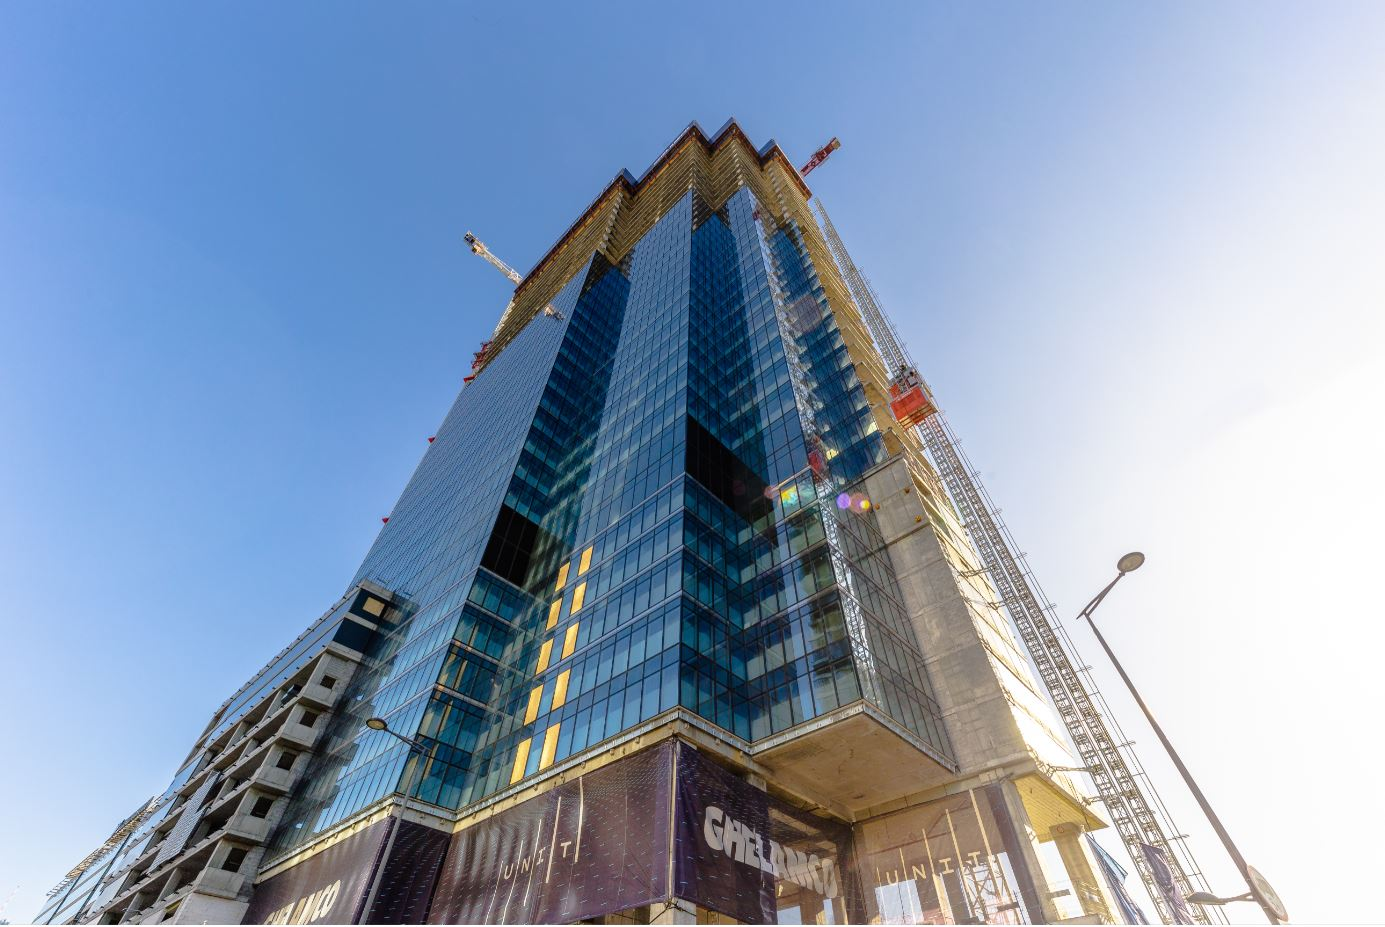 Warsaw UNIT is First Skyscraper in Poland to Apply for WELL v2 Certificate